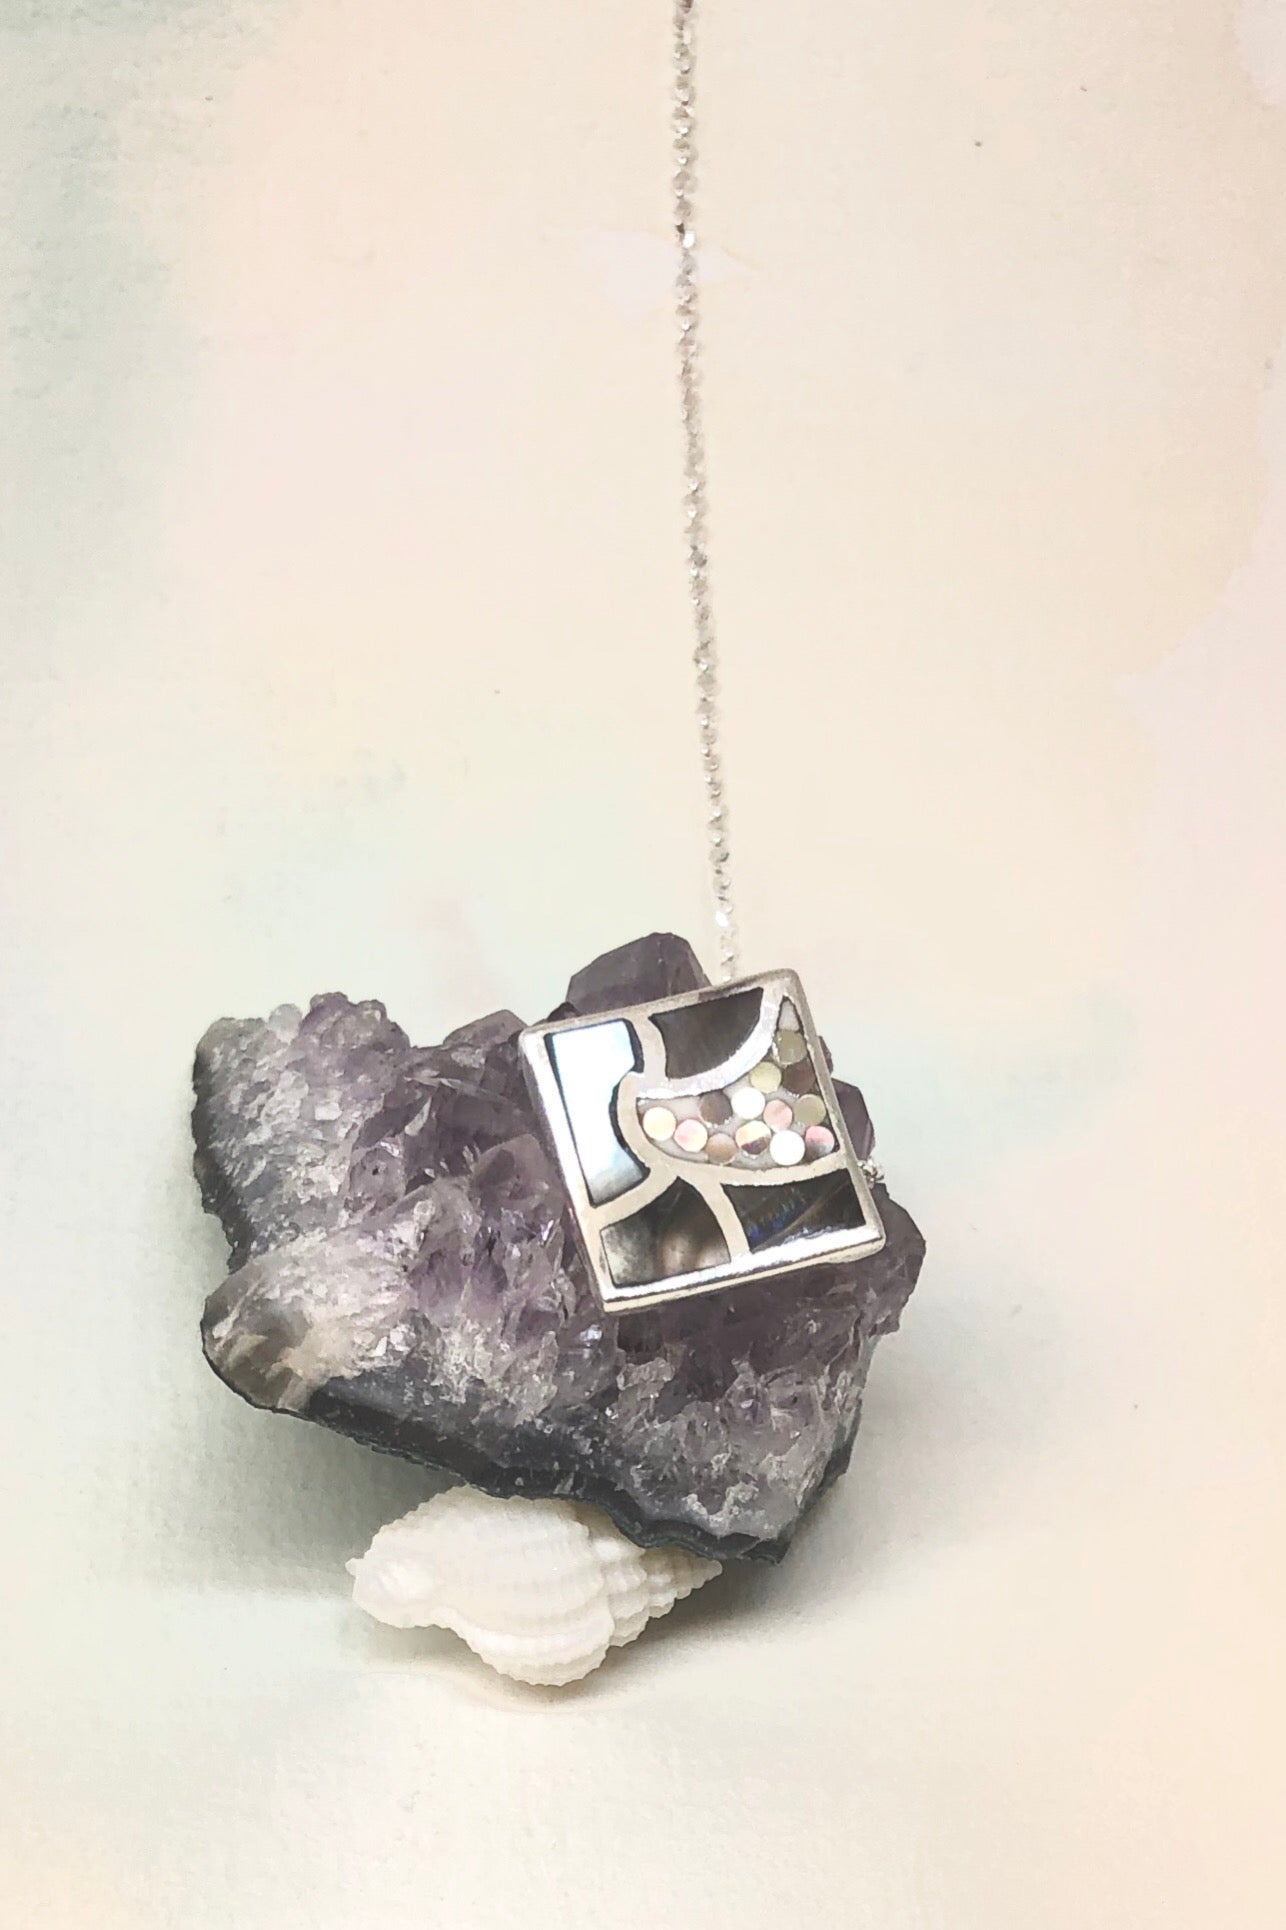 Echo Mosaic Inlaid Pendant has 1.5 cm long high grade natural Mother of Pearl shell and comes on 925 silver chain.